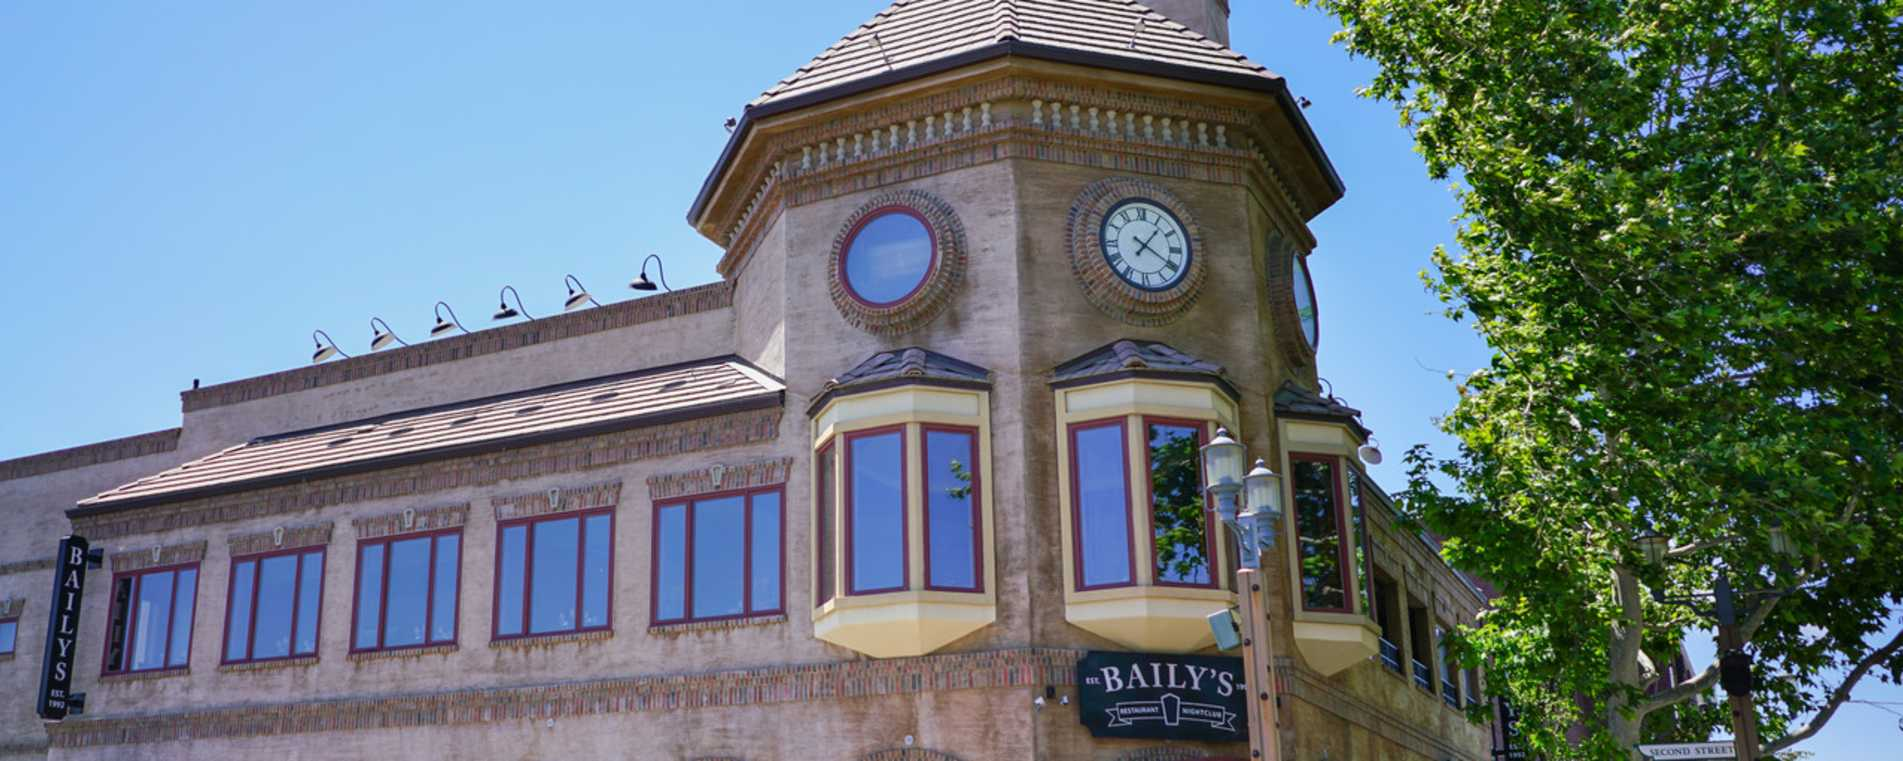 Exterior - Baily's Old Town Temecula